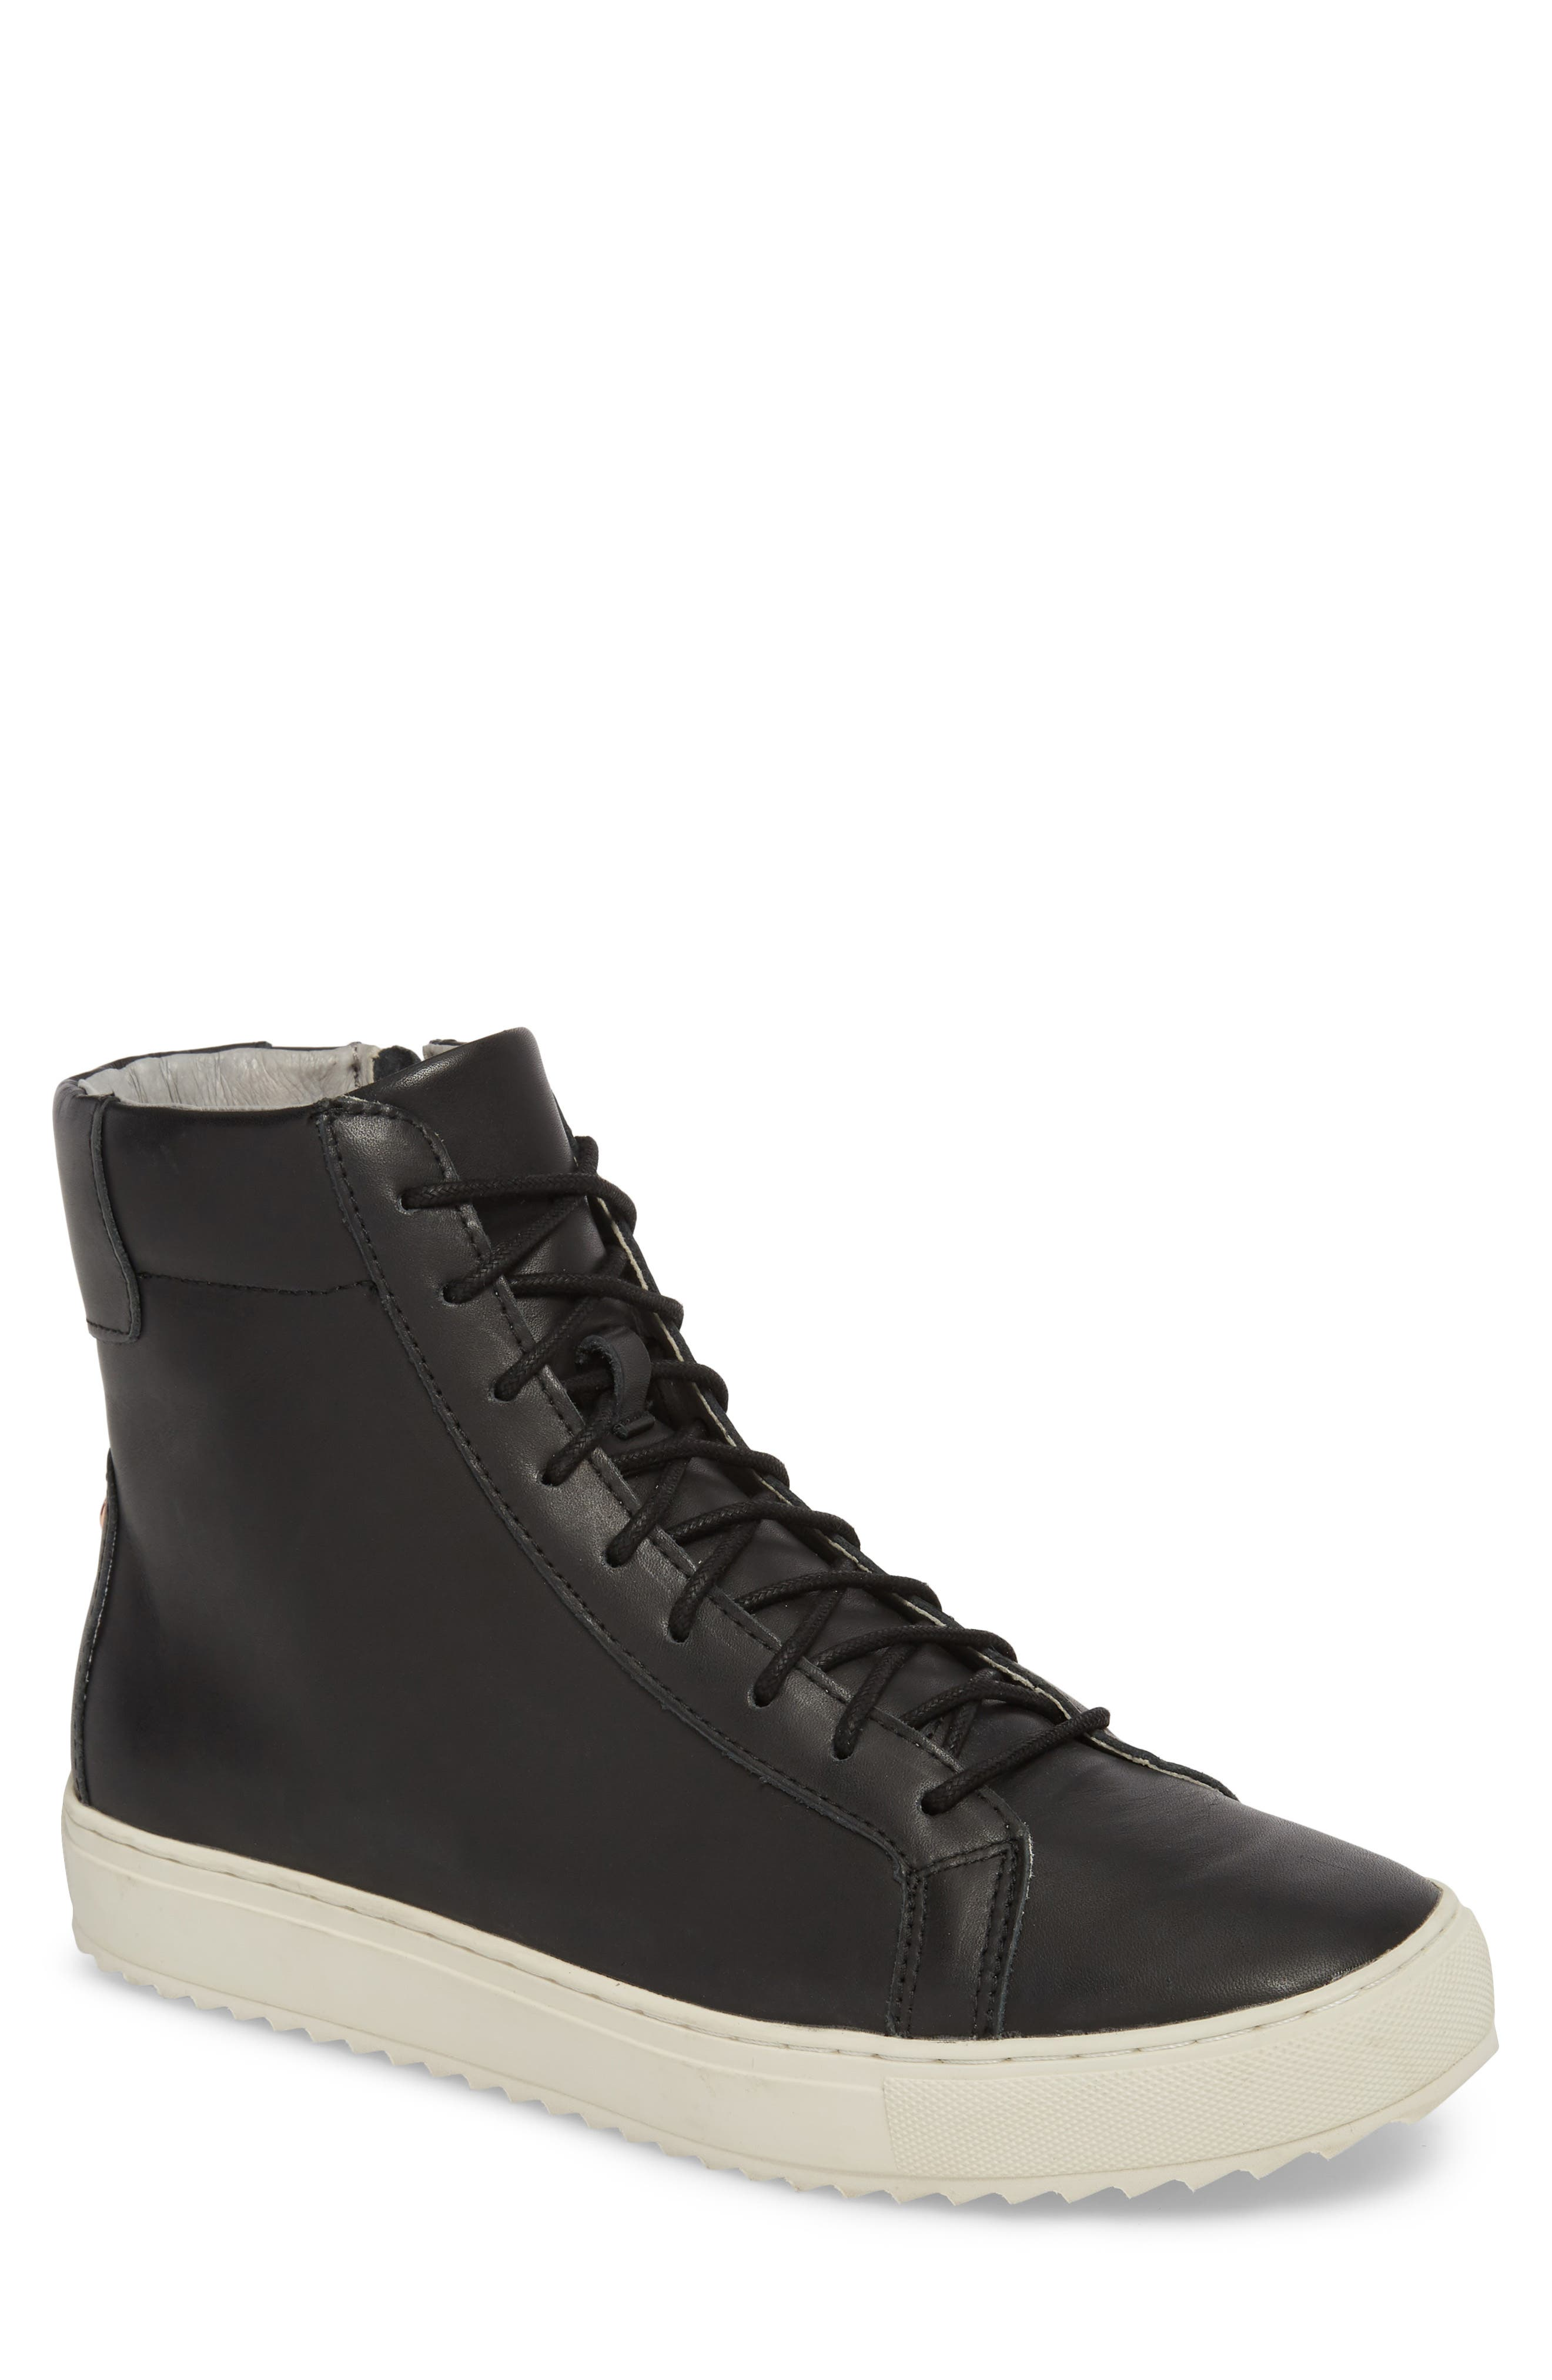 Logan Water Resistant High Top Sneaker,                         Main,                         color, Kettle Leather